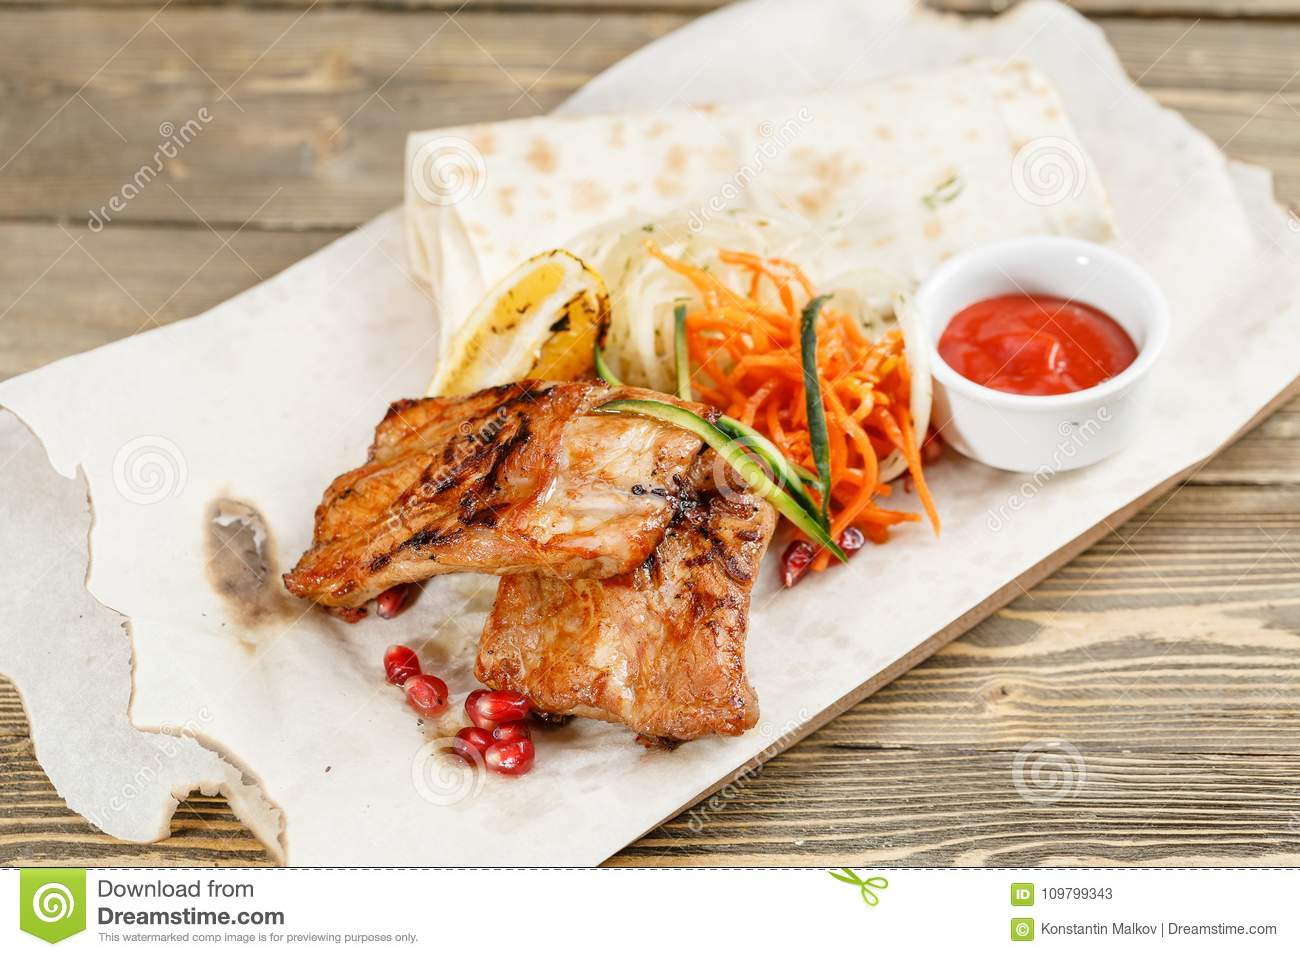 Grilled Pork Ribs Serving On A Wooden Board On A Rustic Table